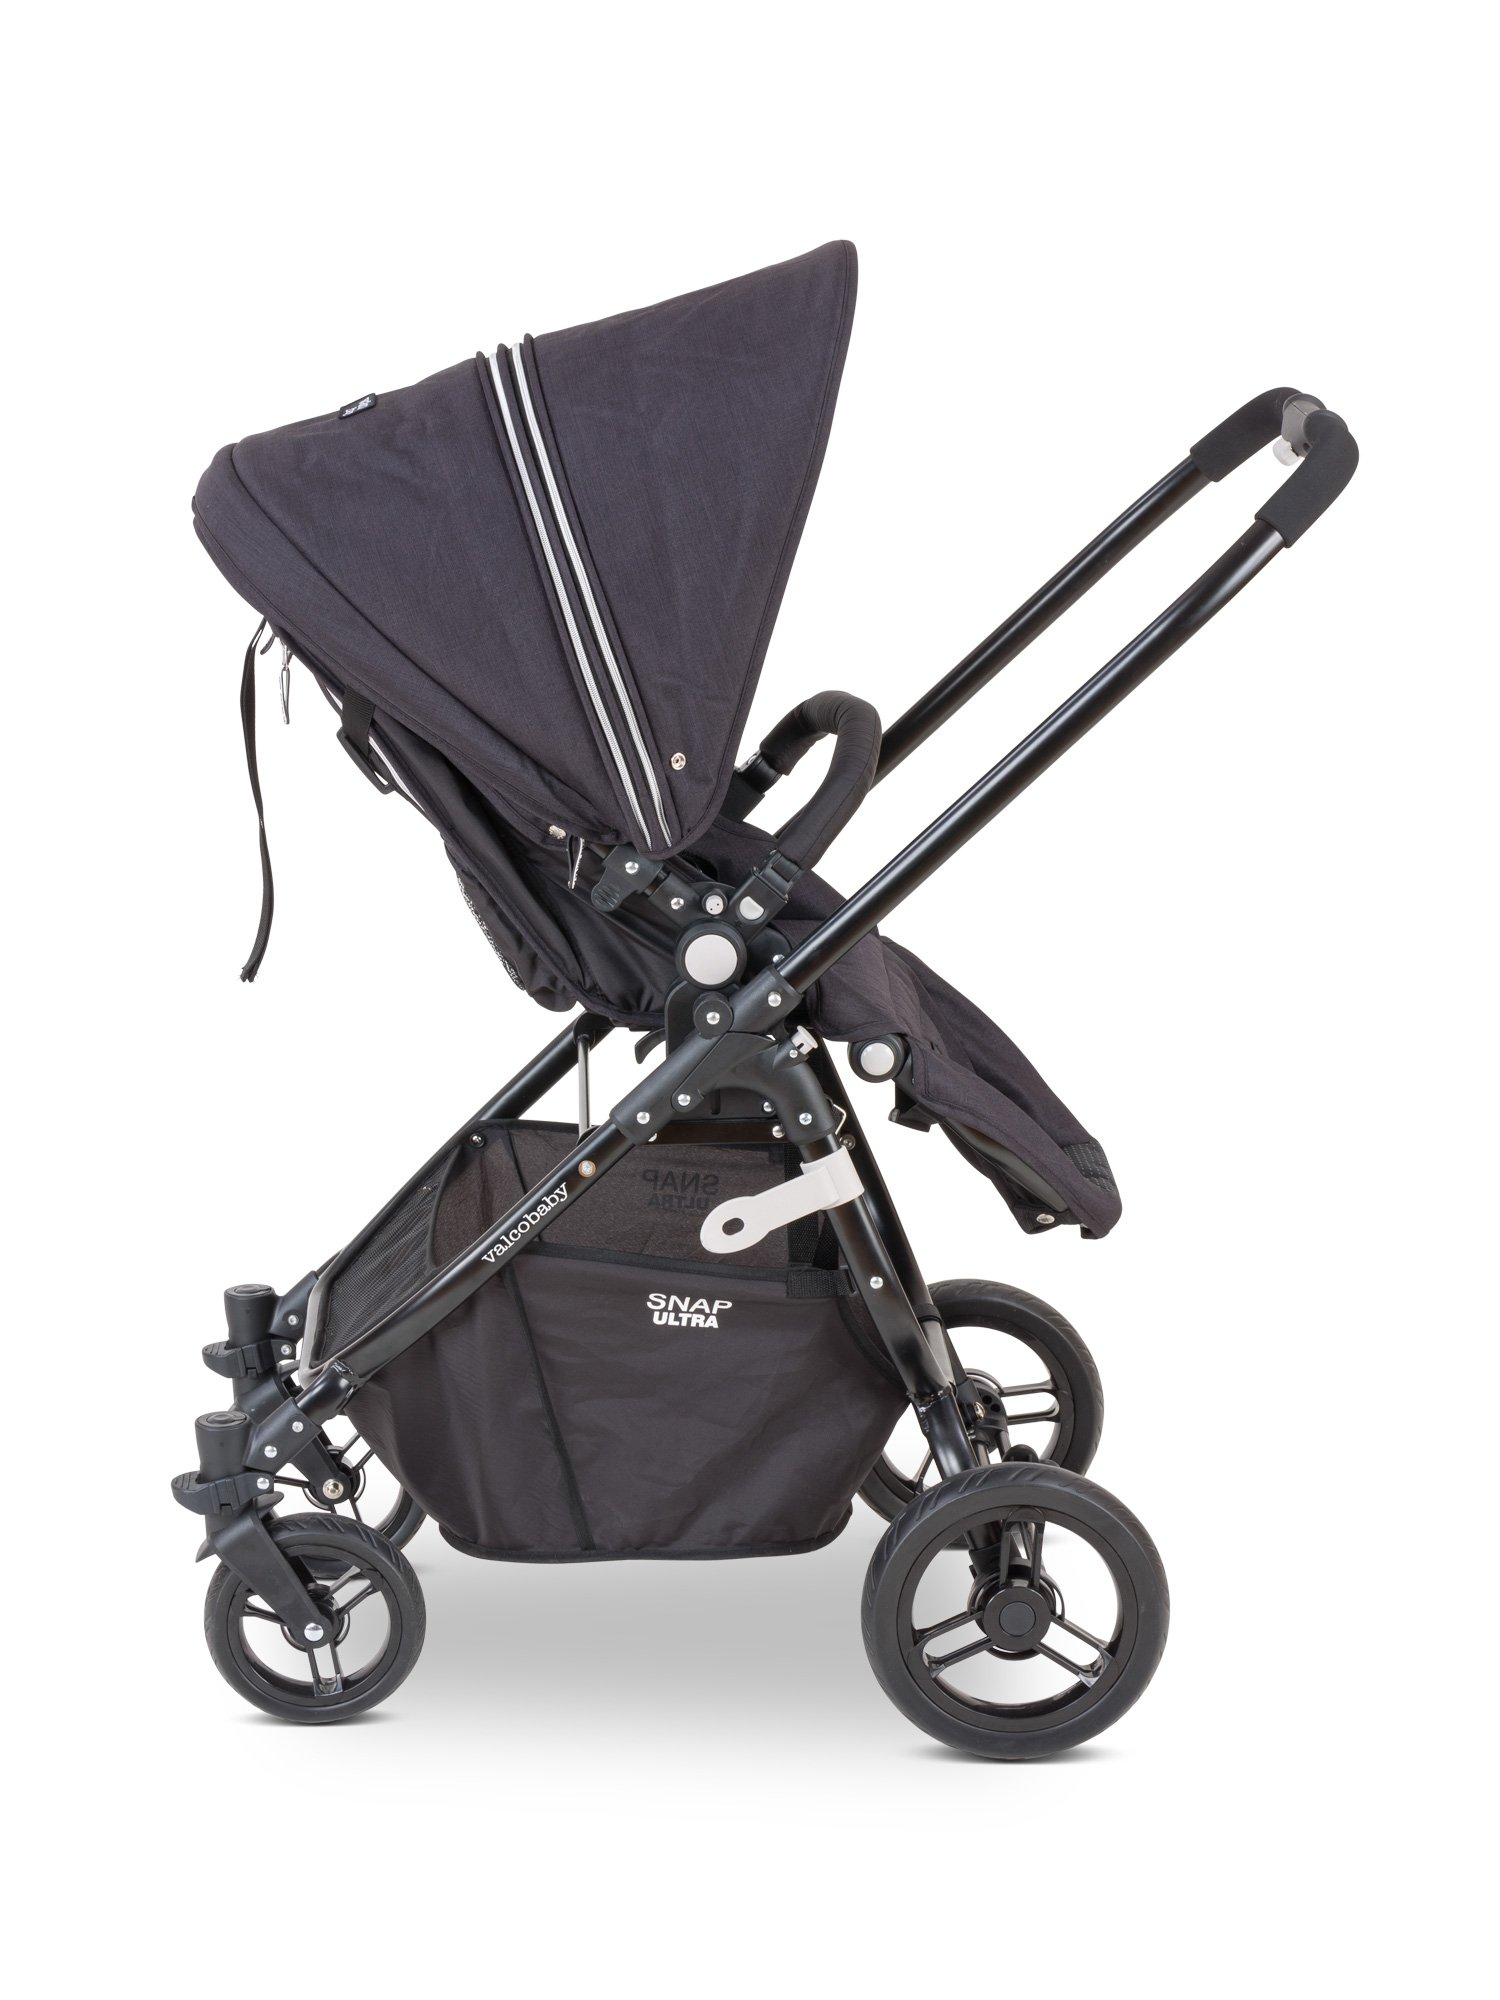 Valco Baby Snap Ultra Lightweight Reversible Stroller (Black Night) by Valco Baby (Image #6)